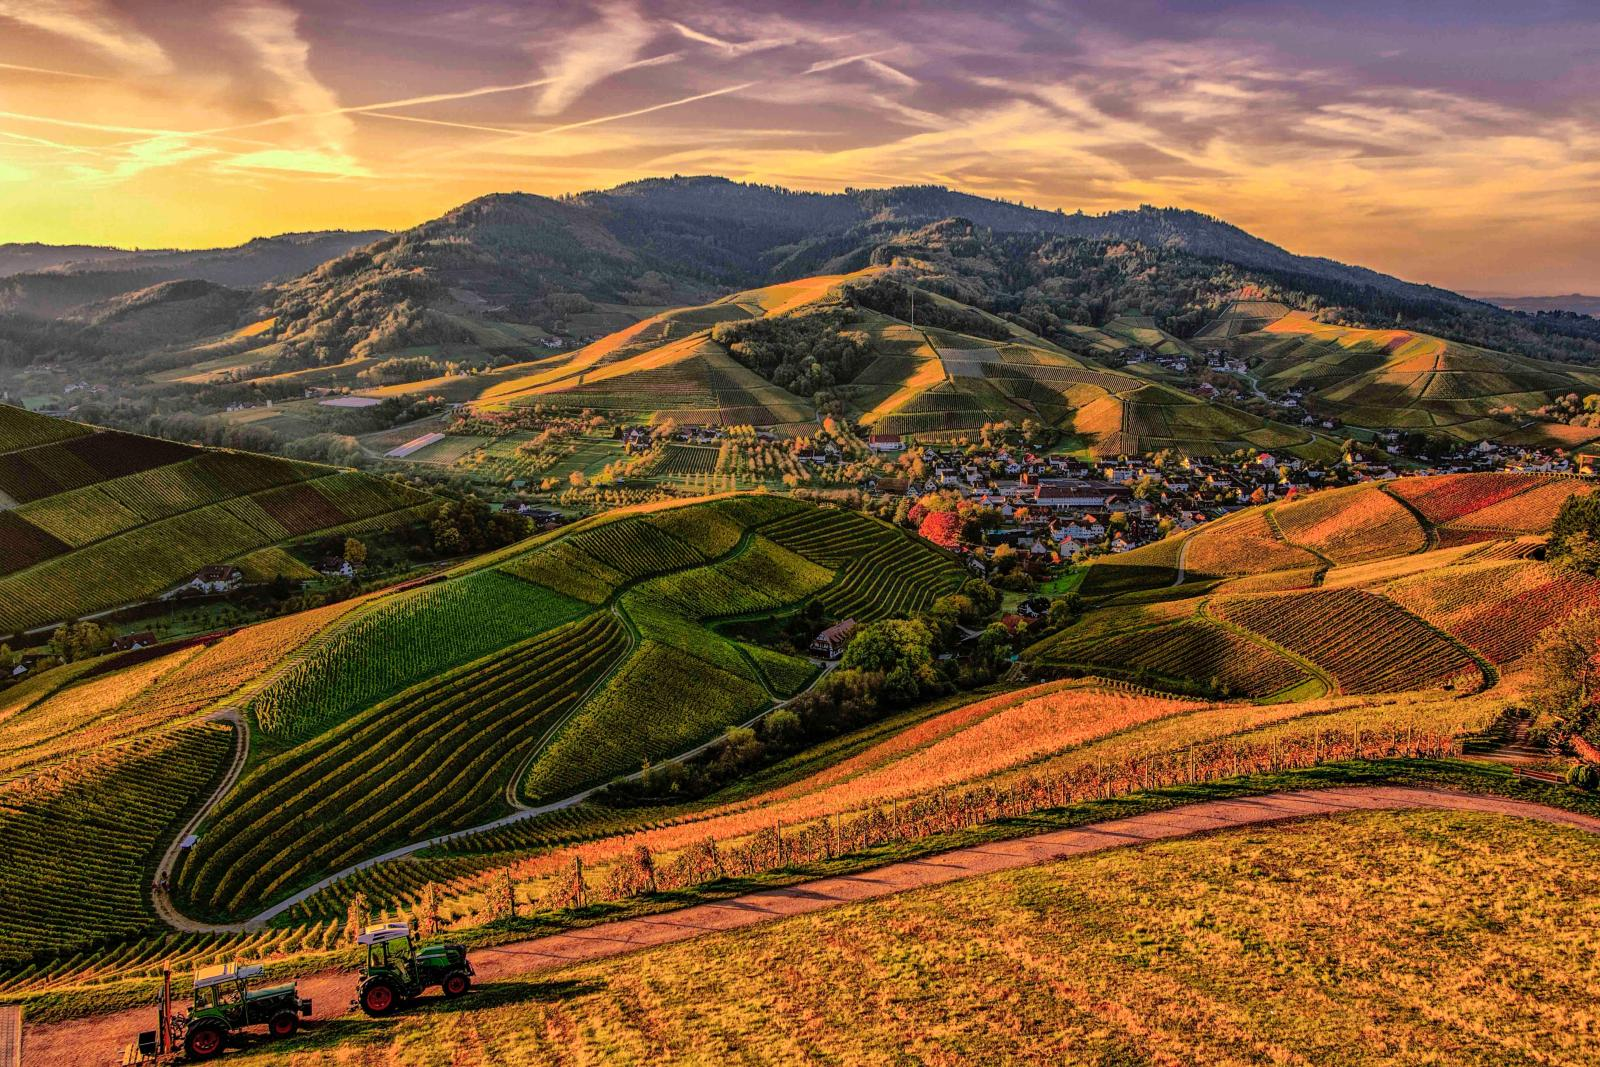 Mountain view of farmland. Photo credit: Pexels